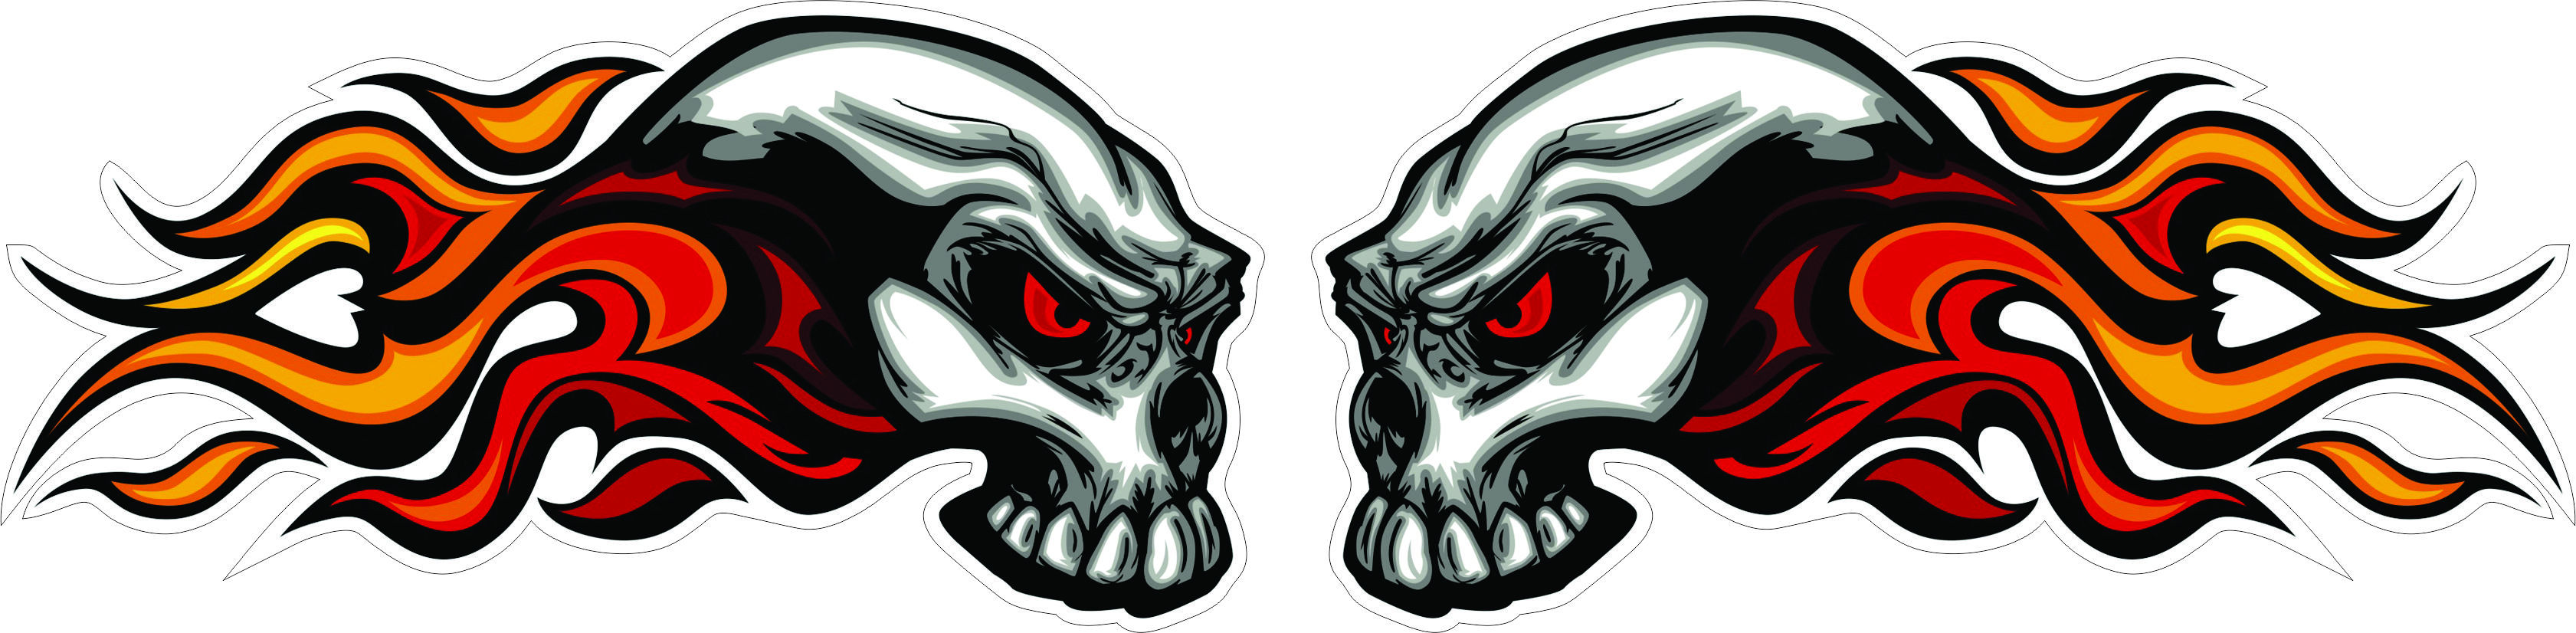 Awesome skulls n stuff images fire skull sticker hd wallpaper and background photos